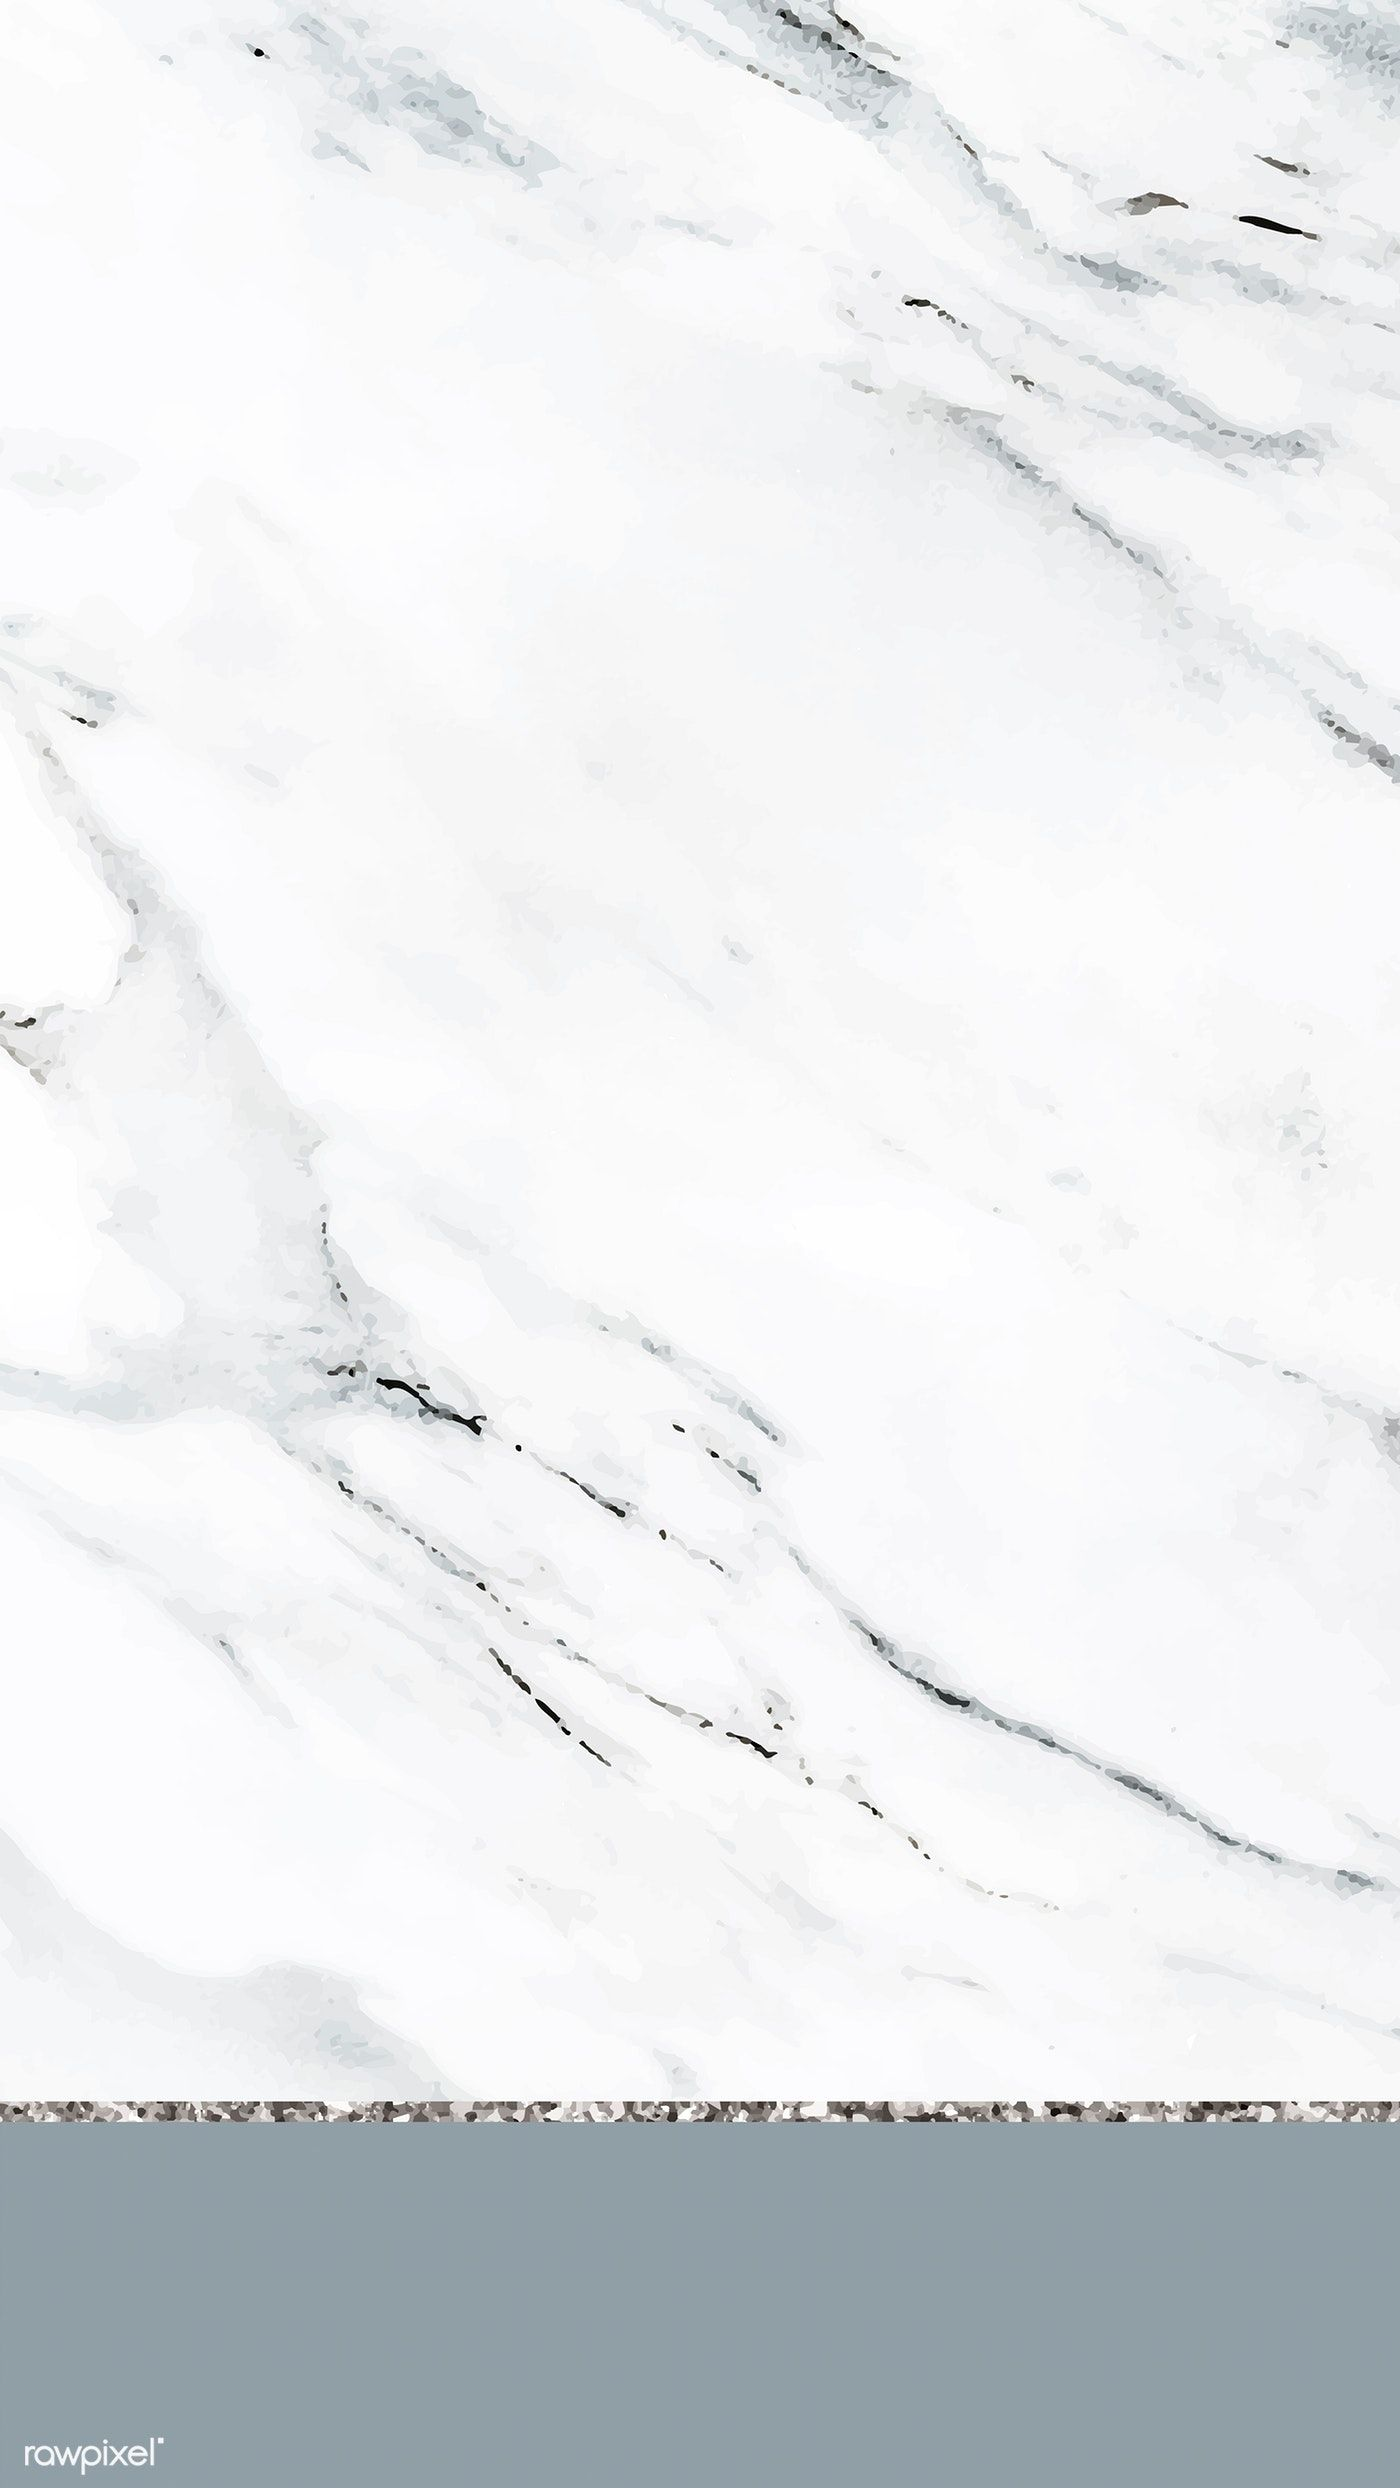 List of Best Marble Phone Wallpaper HD Today by rawpixel.com